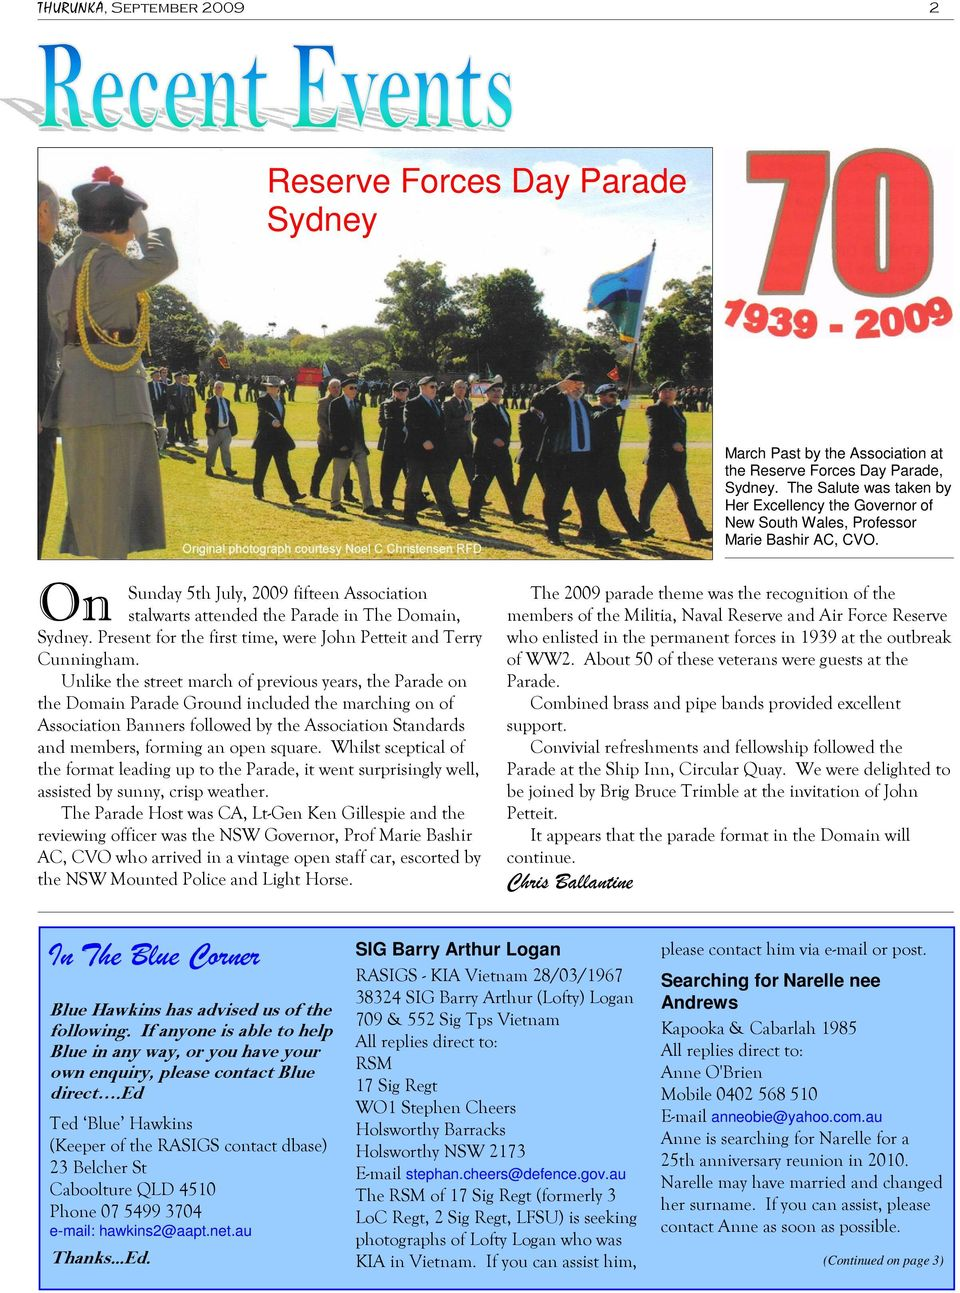 Unlike the street march of previous years, the Parade on the Domain Parade Ground included the marching on of Association Banners followed by the Association Standards and members, forming an open